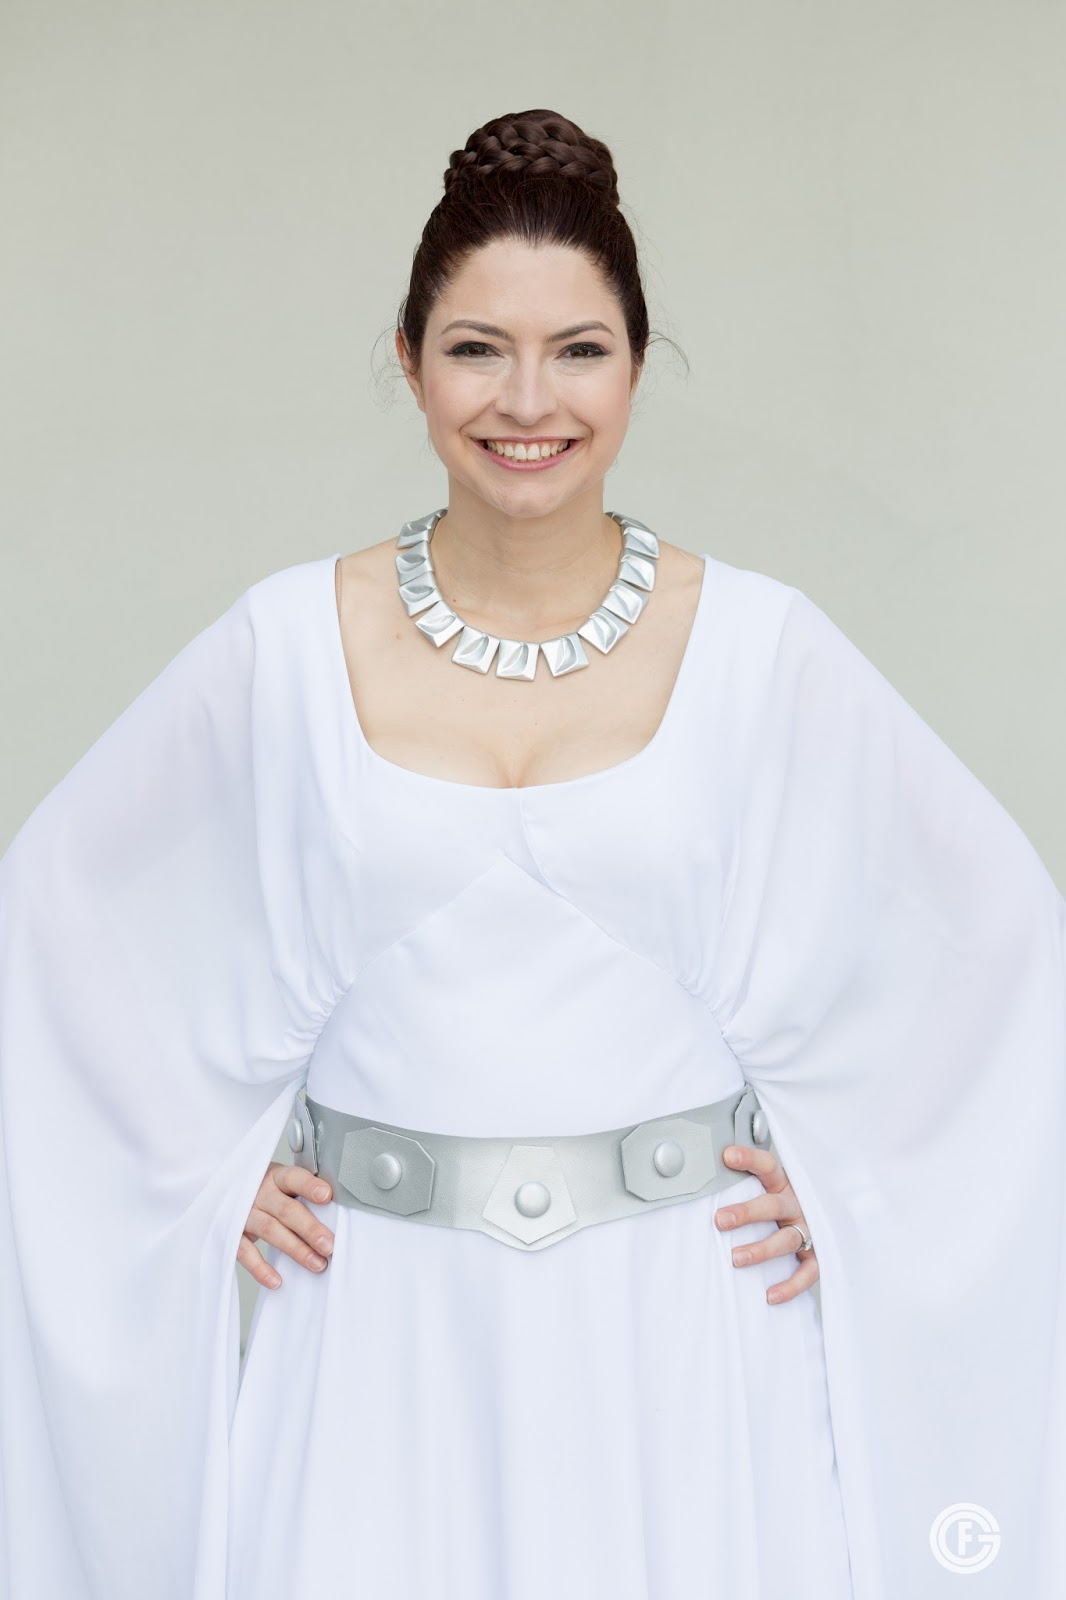 Resources - Princess Leia Yavin Ceremonial Gown | Jen Eyre Cosplay